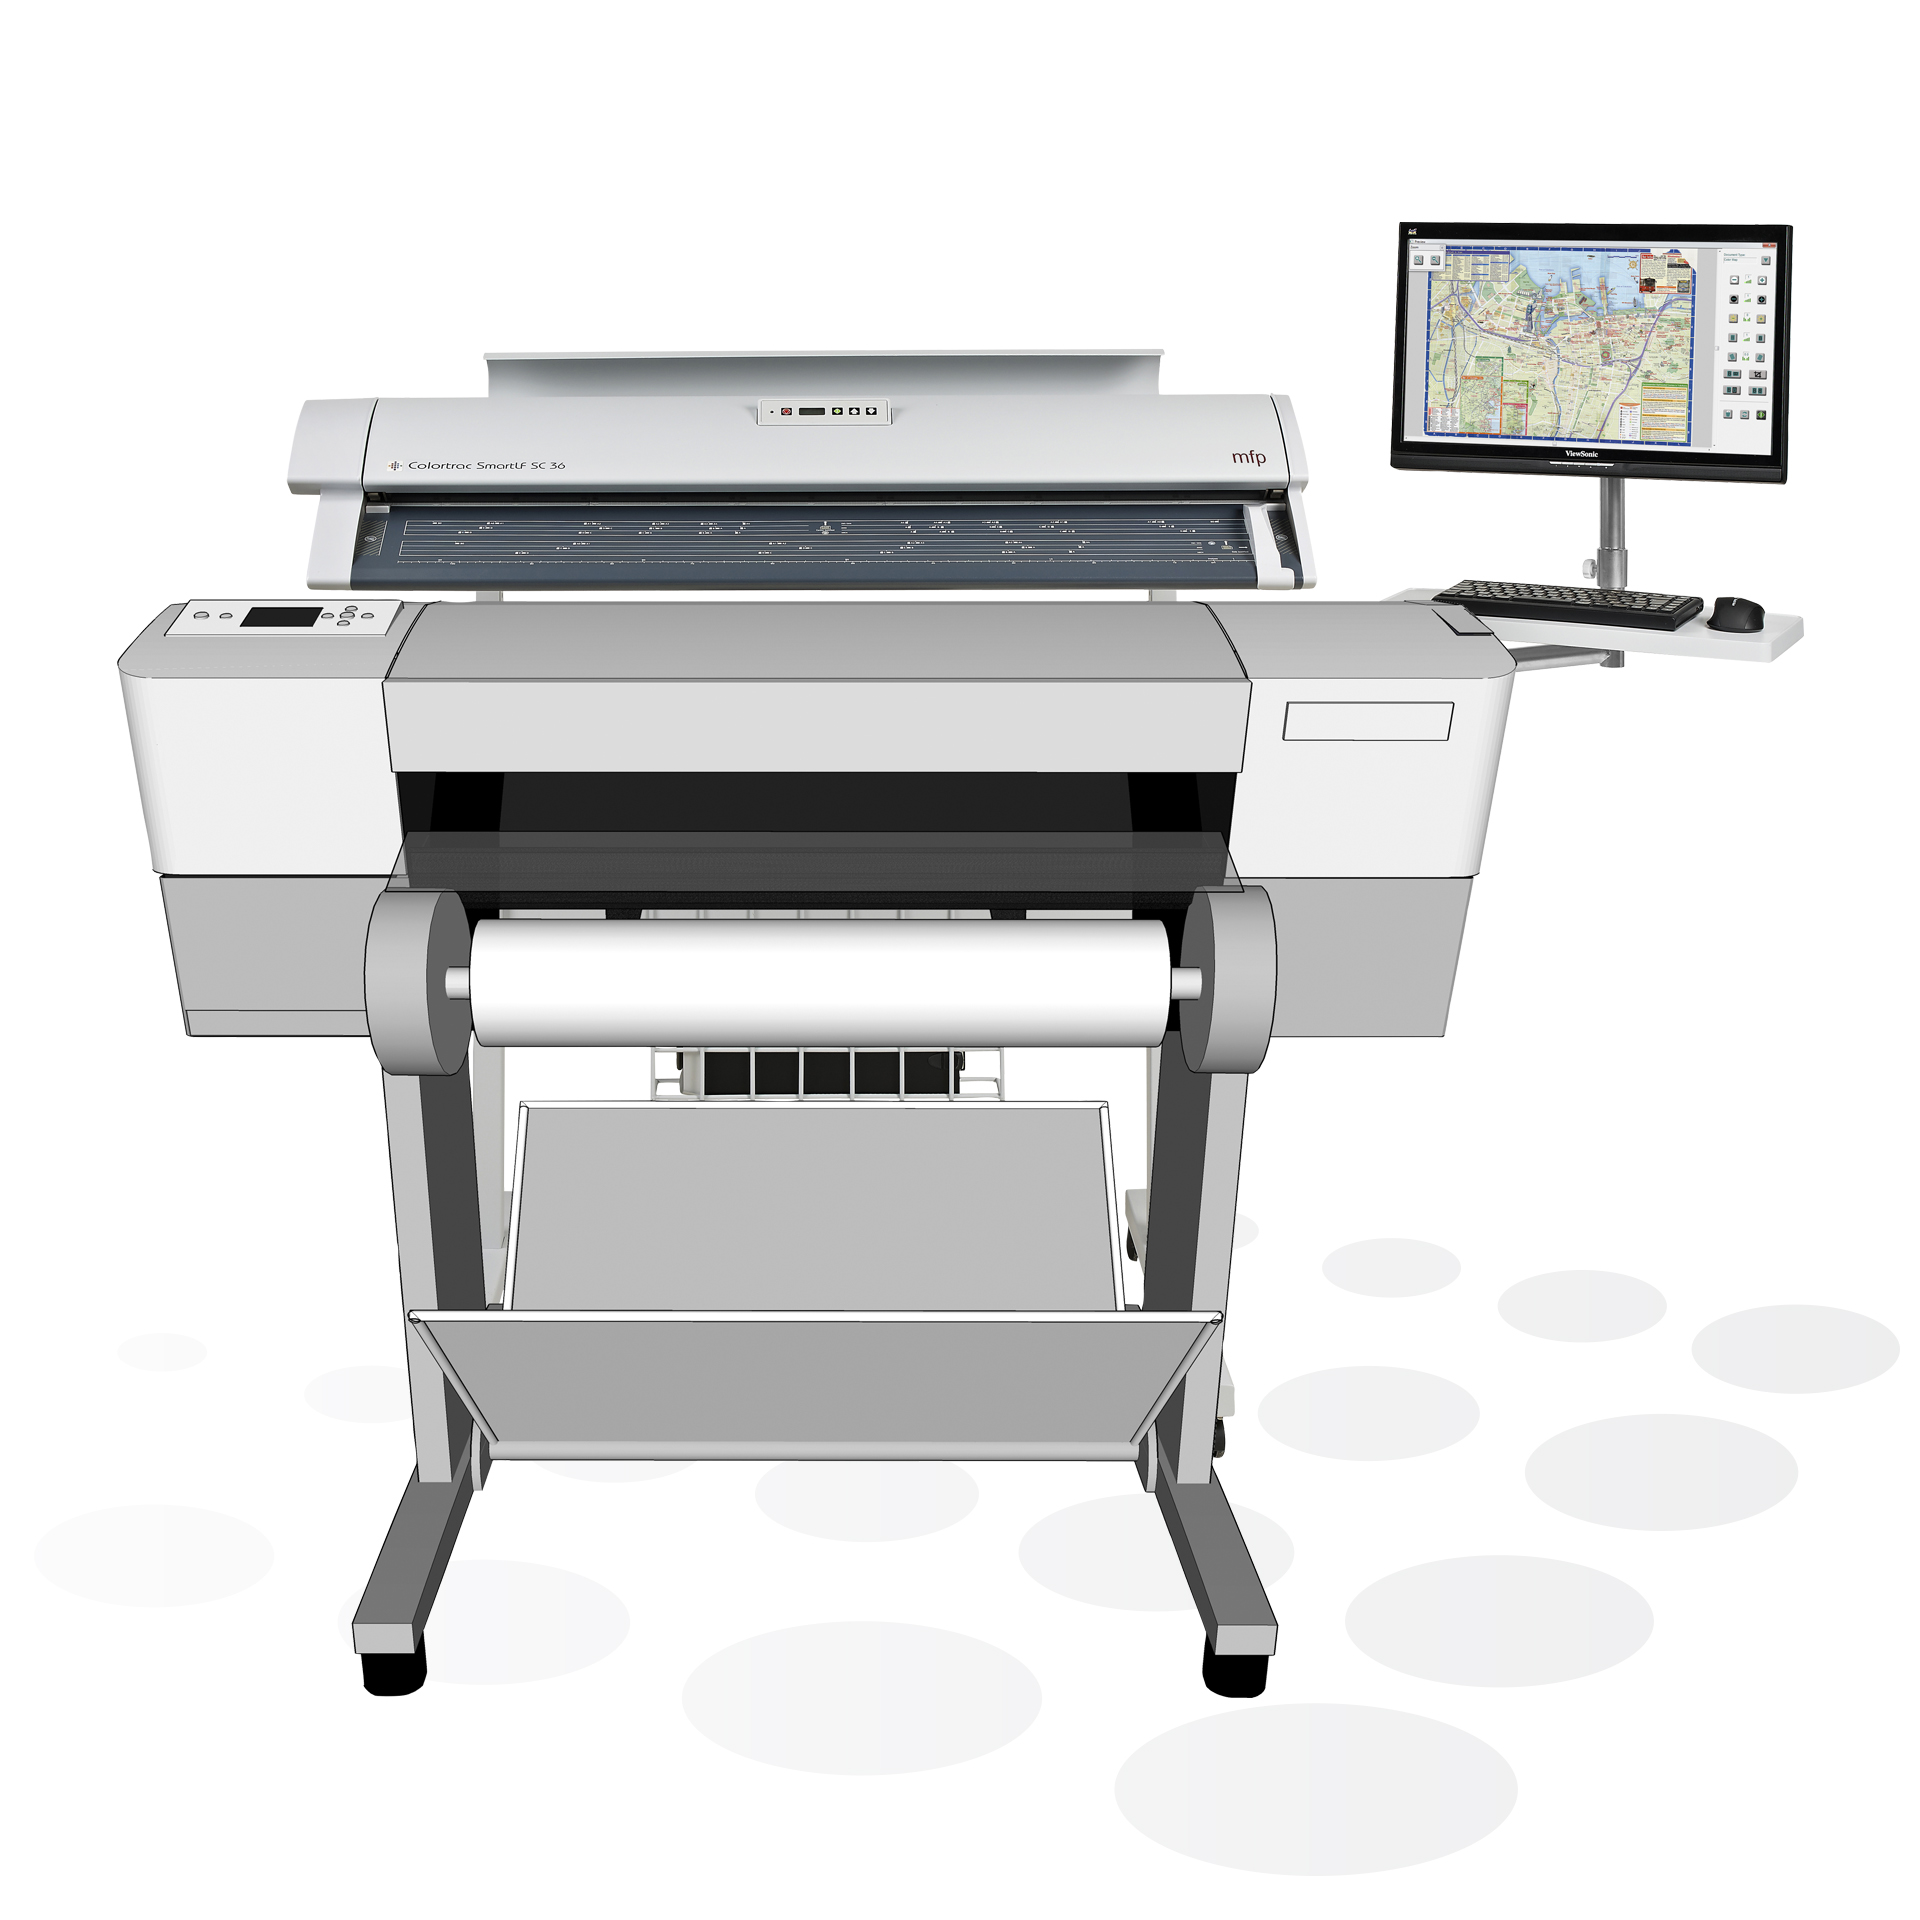 Colortrac SmartLF SC 36 MFP Kombination mit HP Plottern